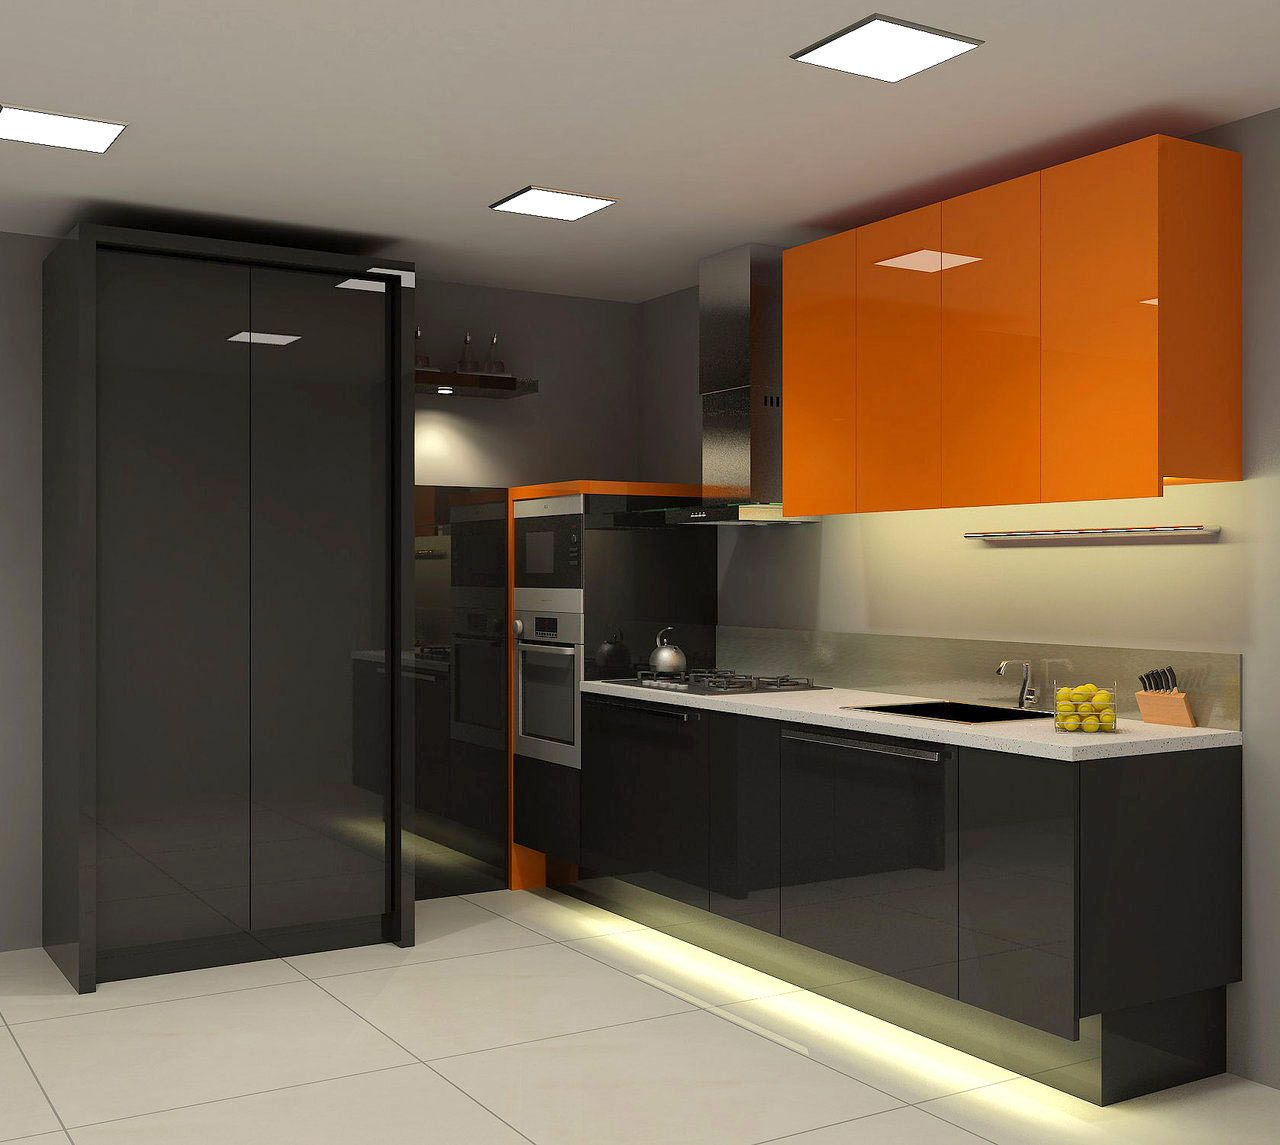 Simply cool kitchen design idea with sleek black kitchen for Cool kitchen wall colors